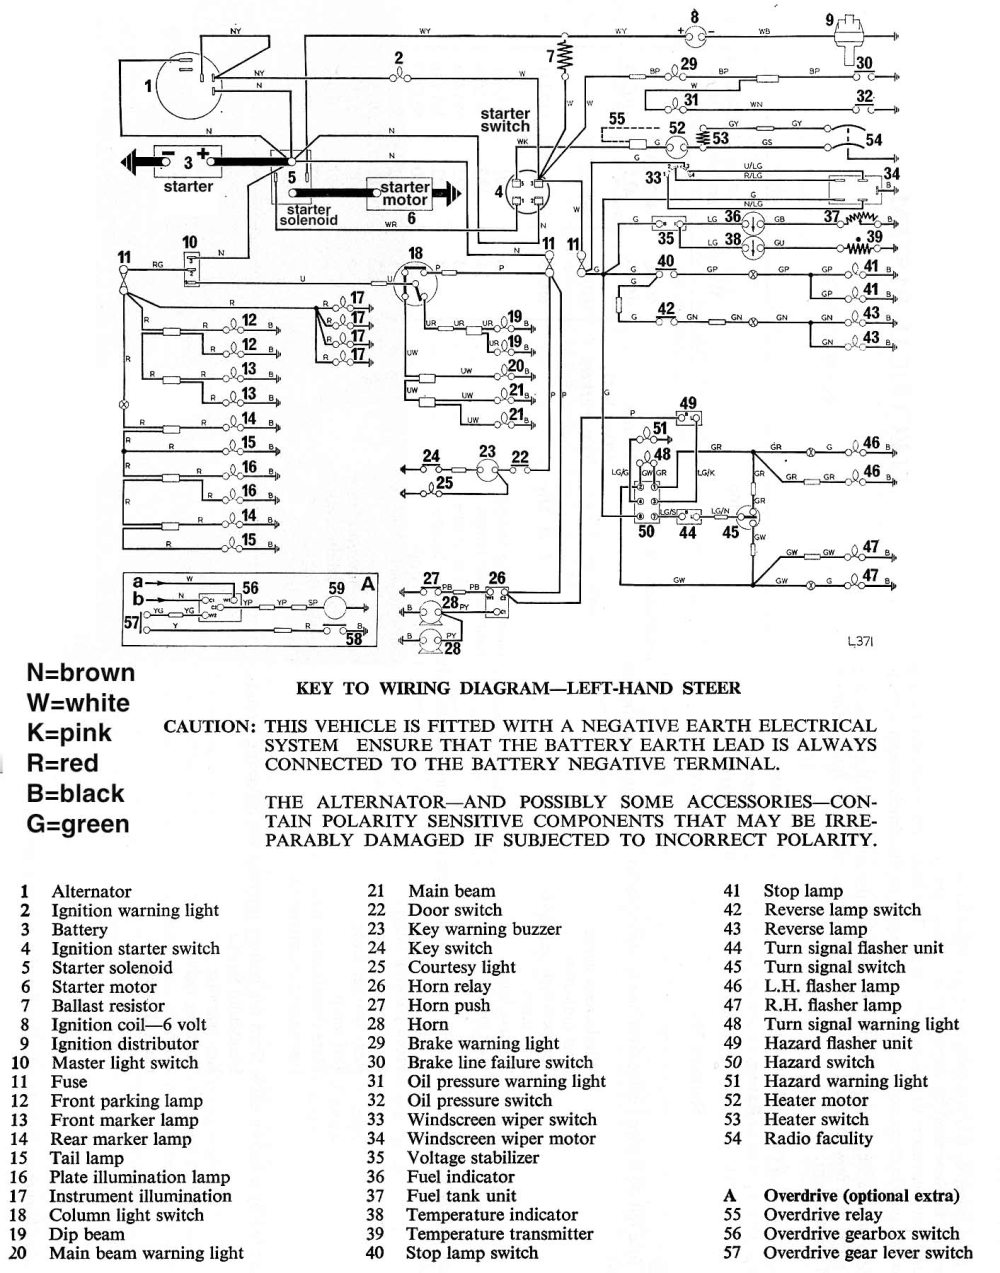 medium resolution of 76 jeep cj5 wiring diagram schematic wiring library rh 43 codingcommunity de jeep cj5 gauge wiring